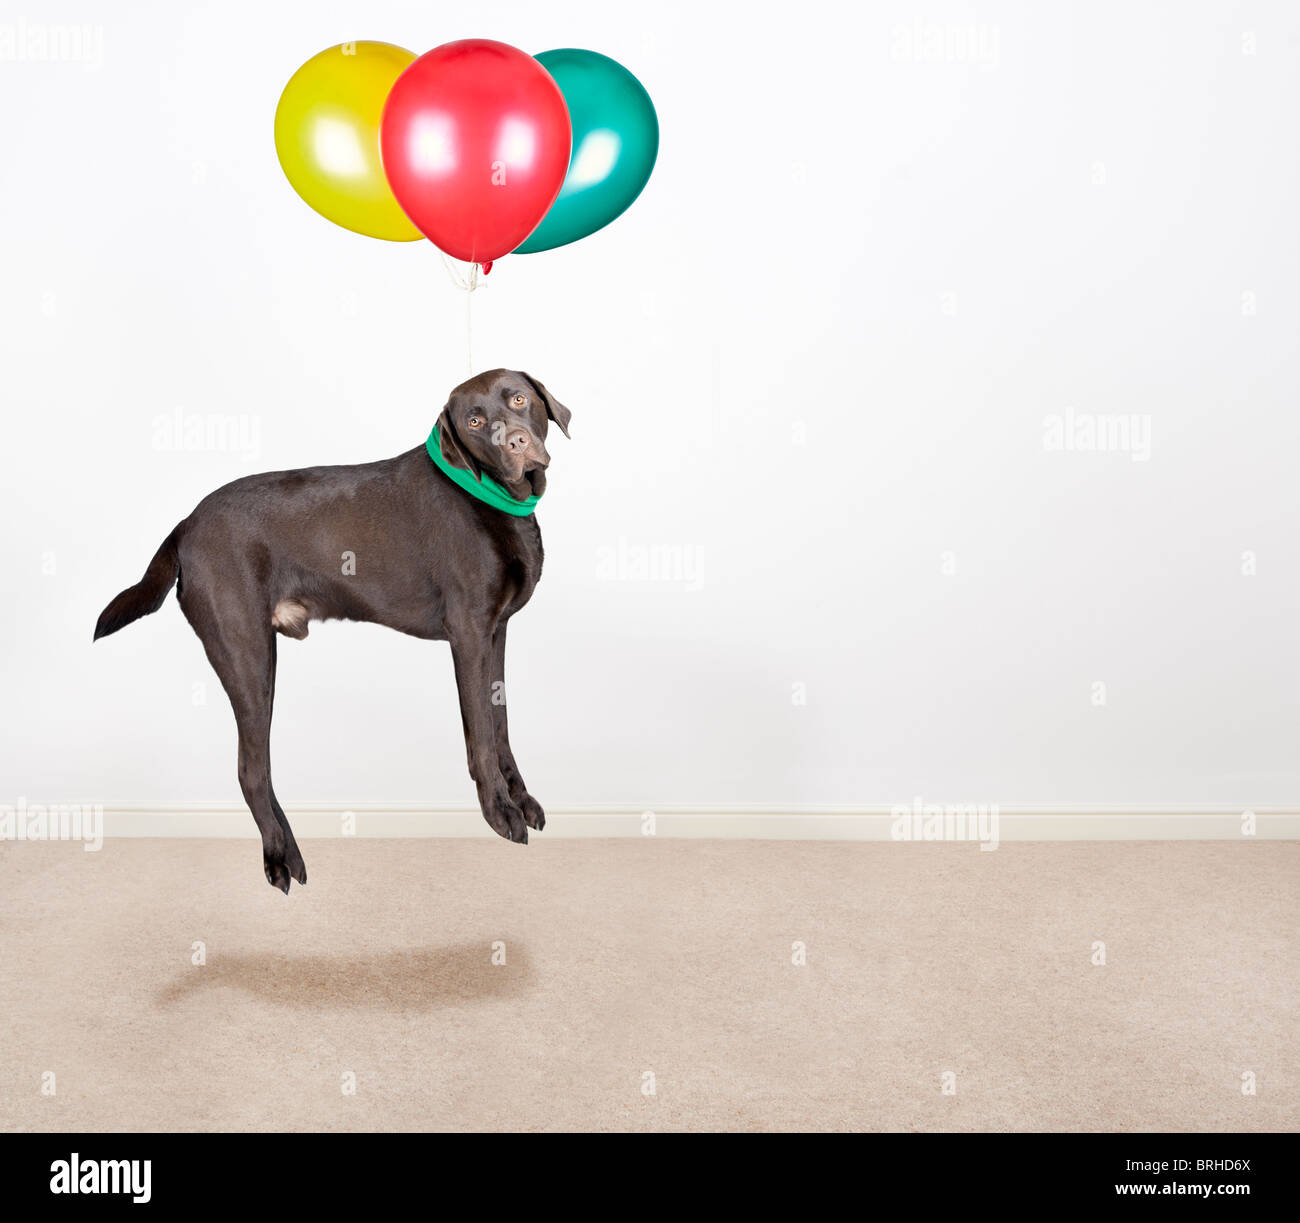 Shot of a Cute Chocolate Labrador Being Lifted by Balloons - Stock Image